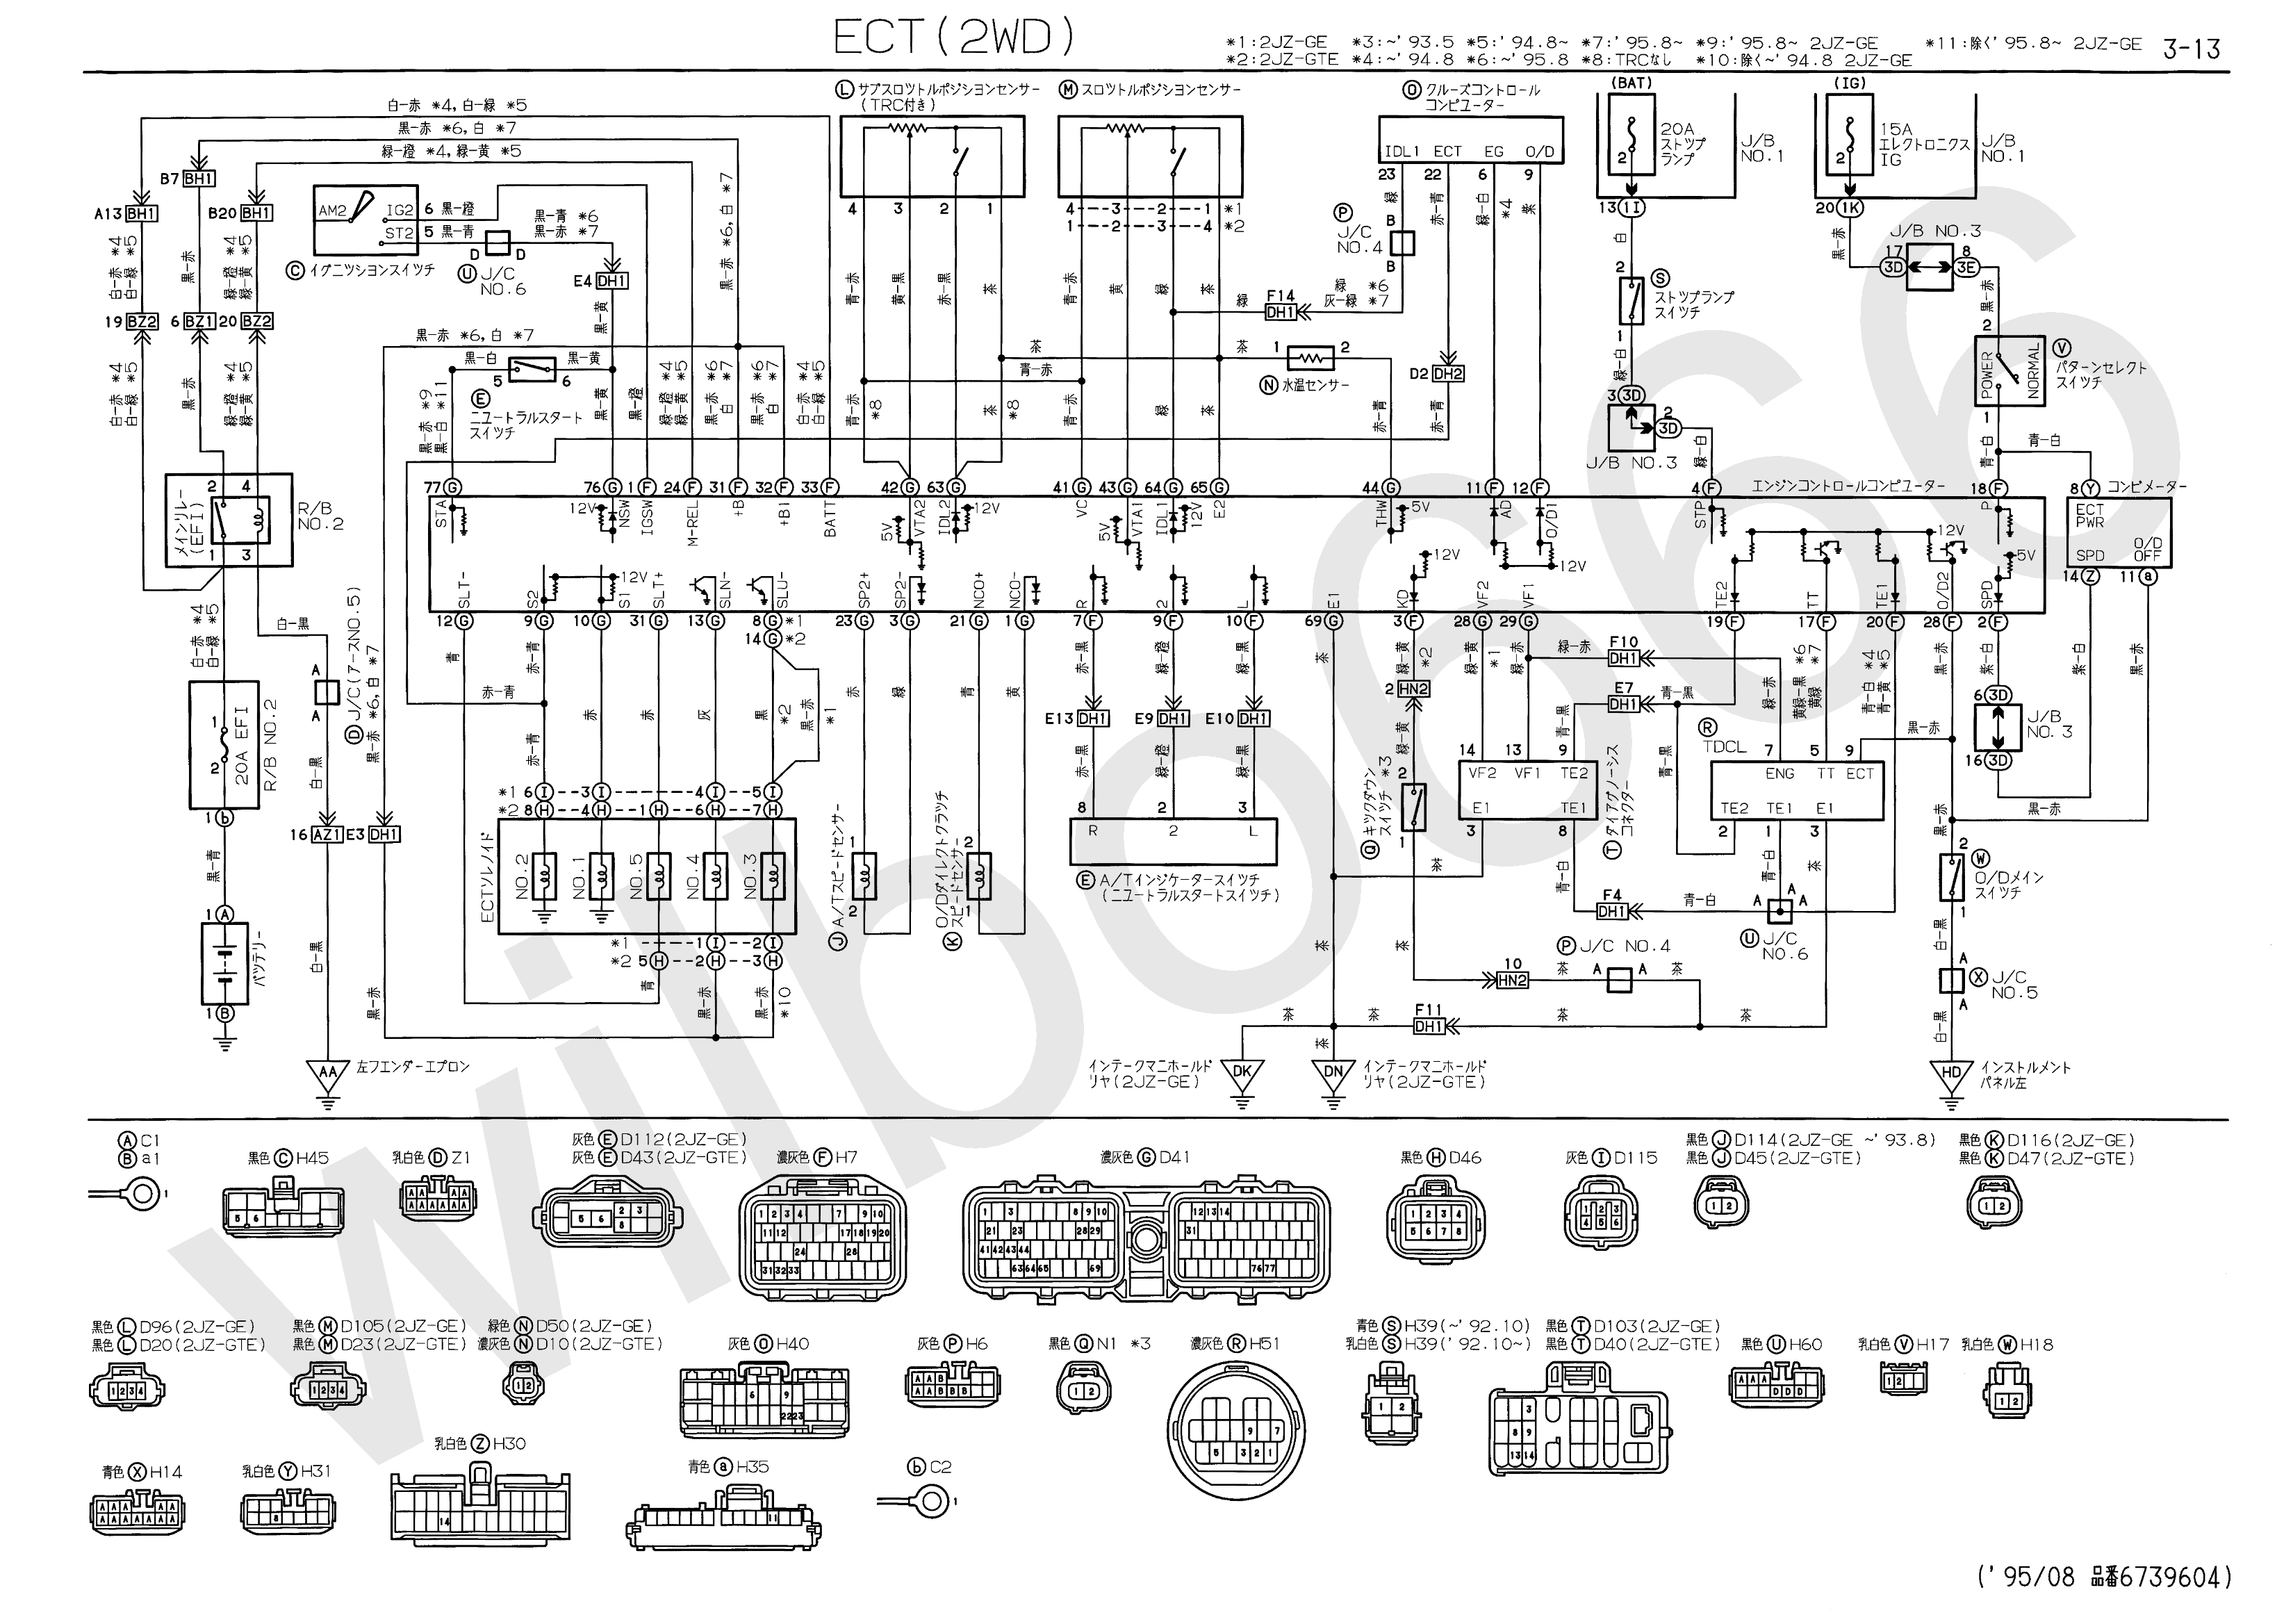 Wilbo666 2jz Gte Jzs147 Aristo Engine Wiring Toyota Nsw Sta Diagram